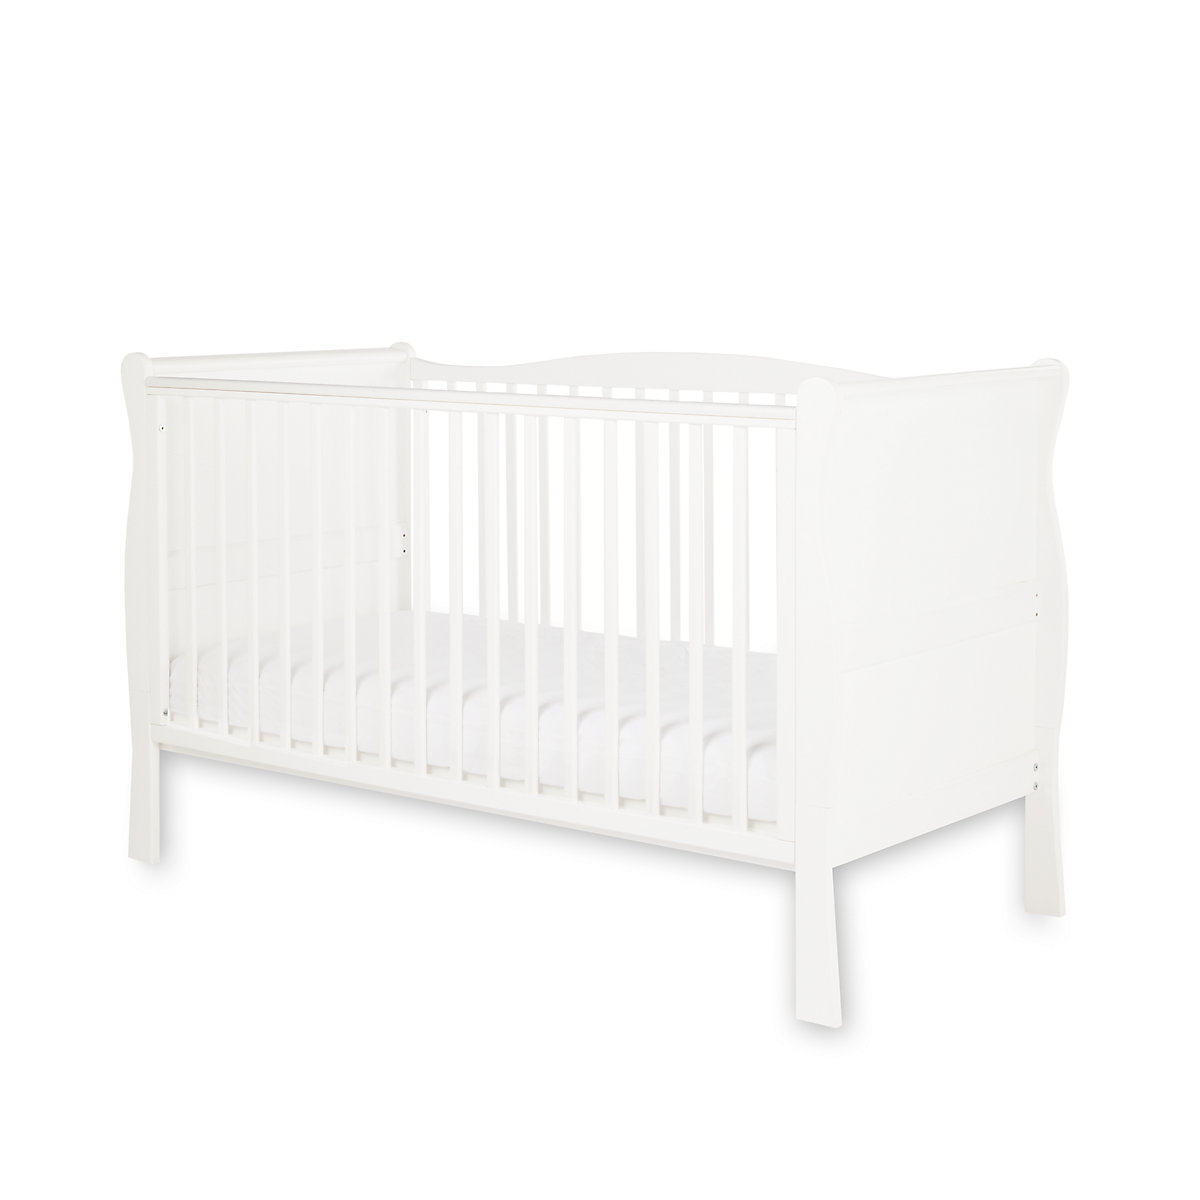 Little Acorns Sleigh Cot Bed   White